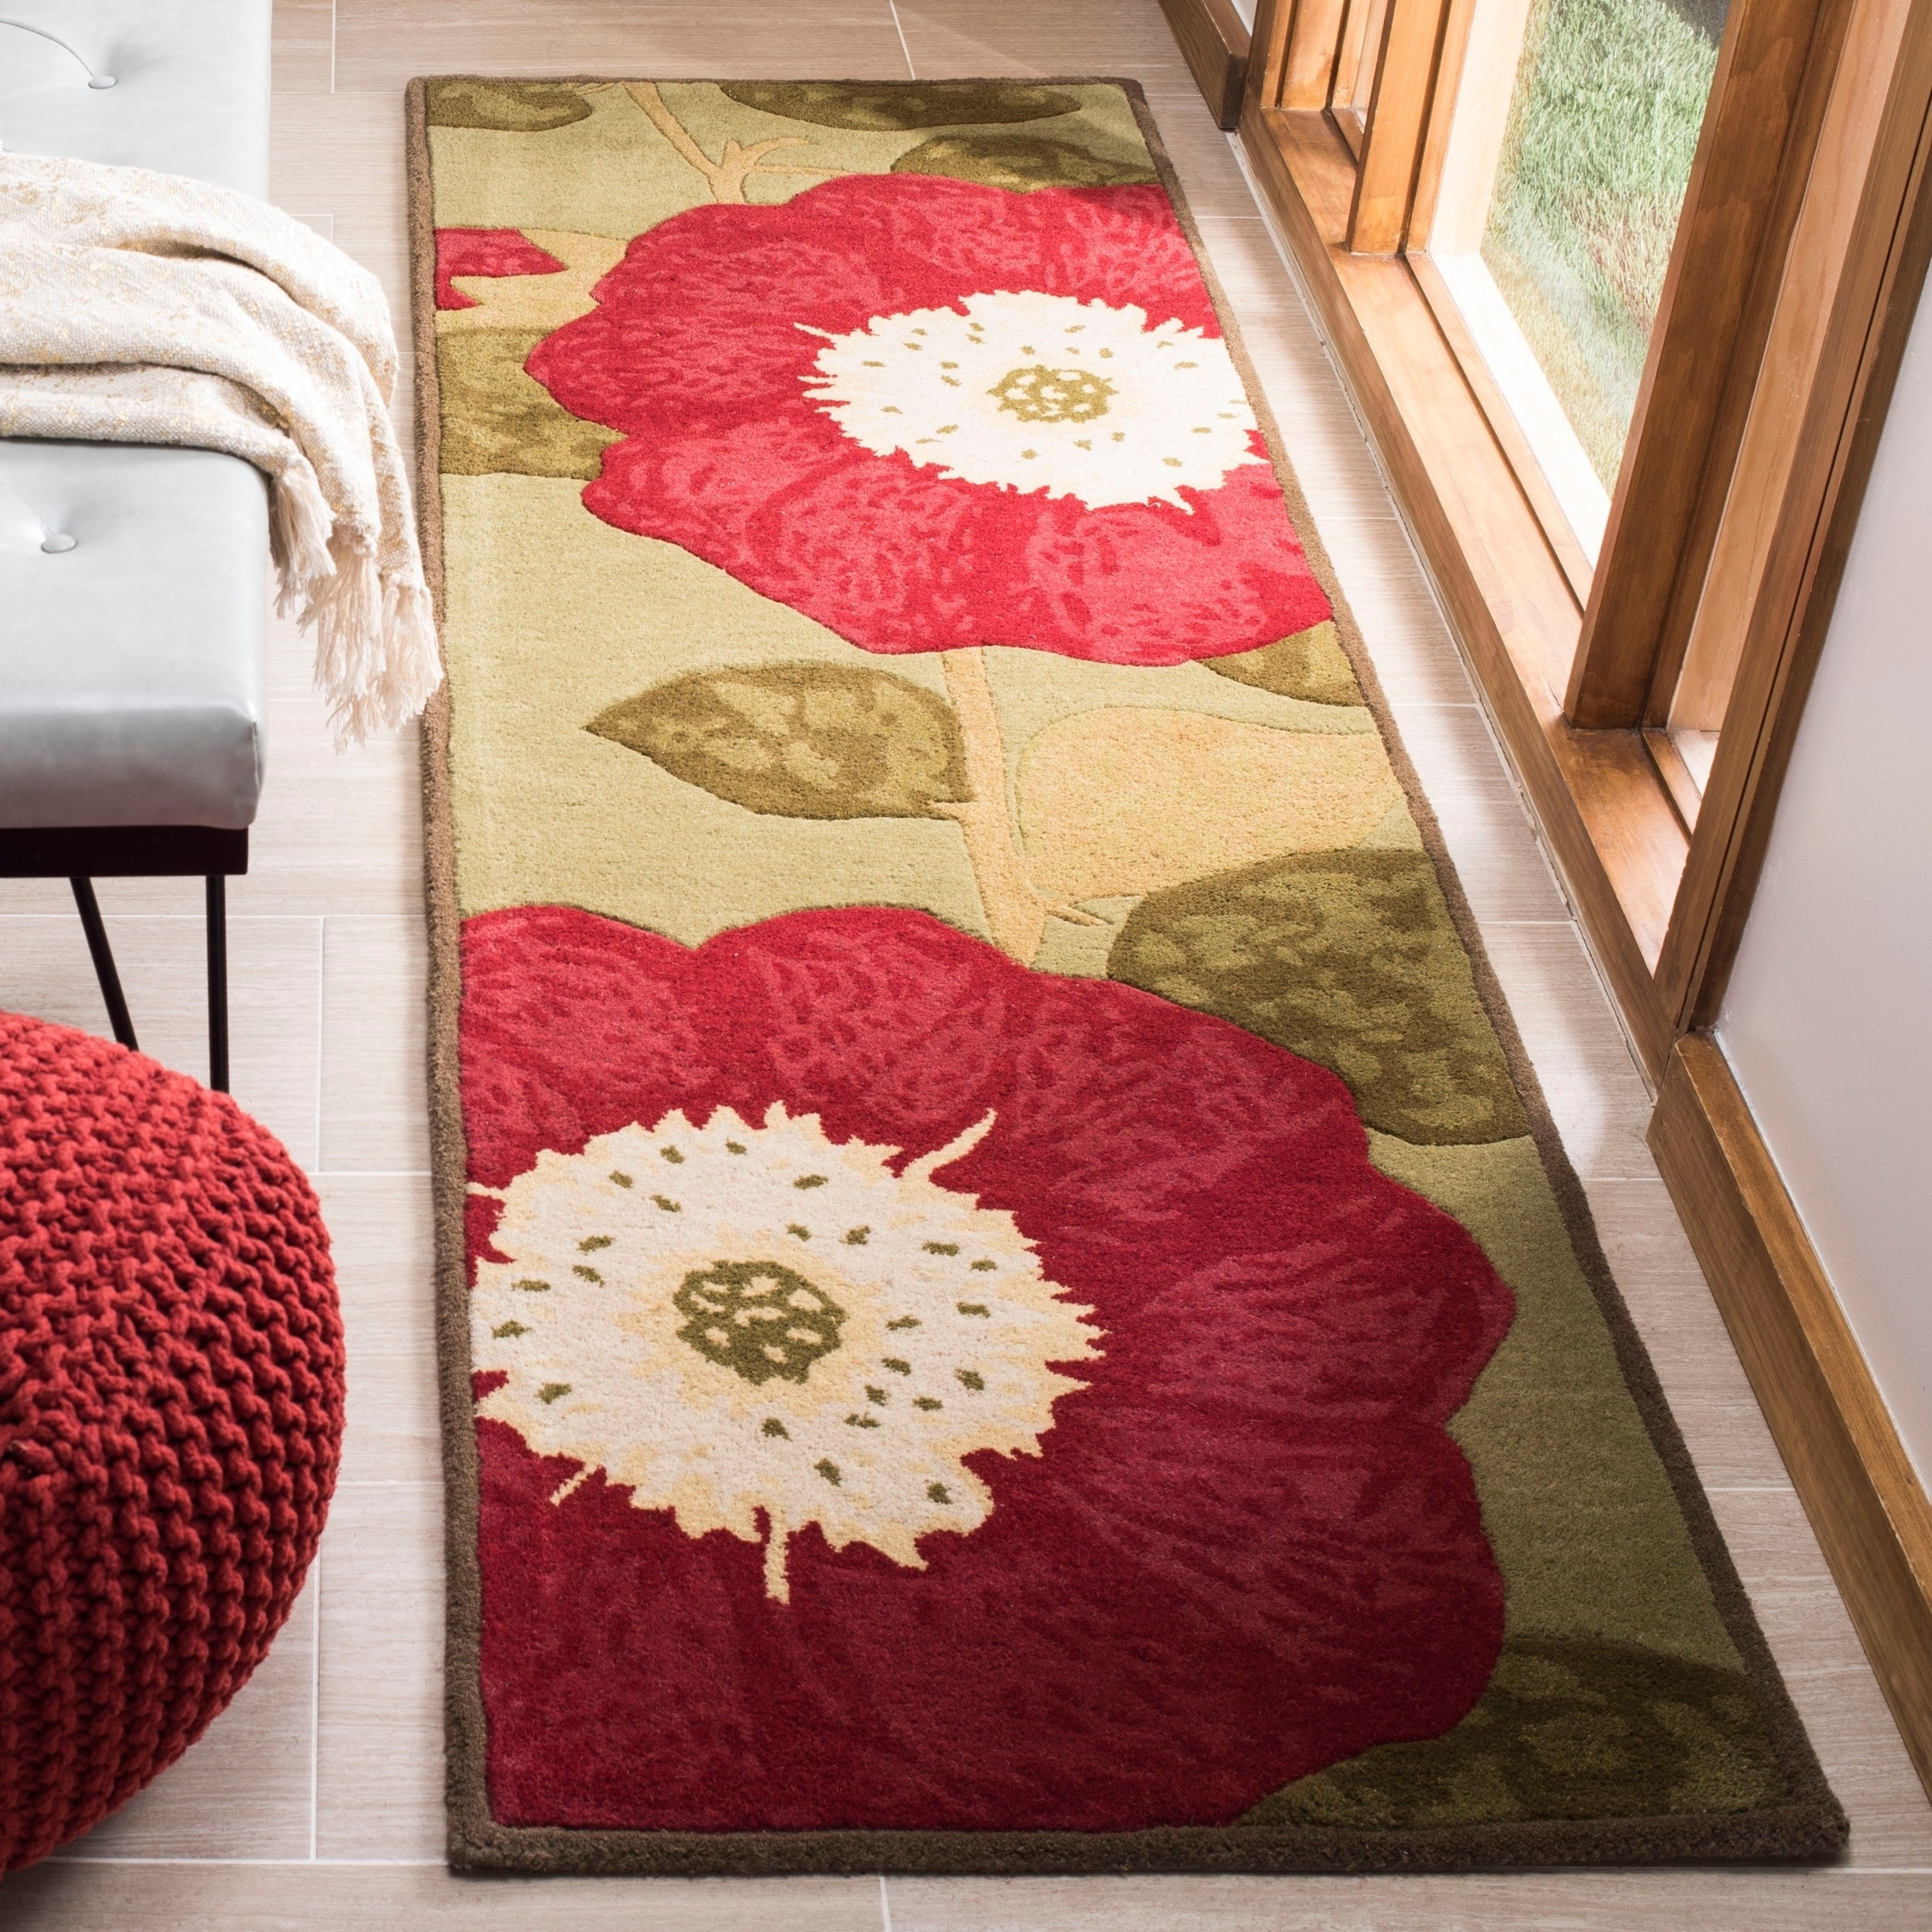 Details About Safavieh Handmade Martha Stewart Collection Contemporary Floral Dill Wool Rug